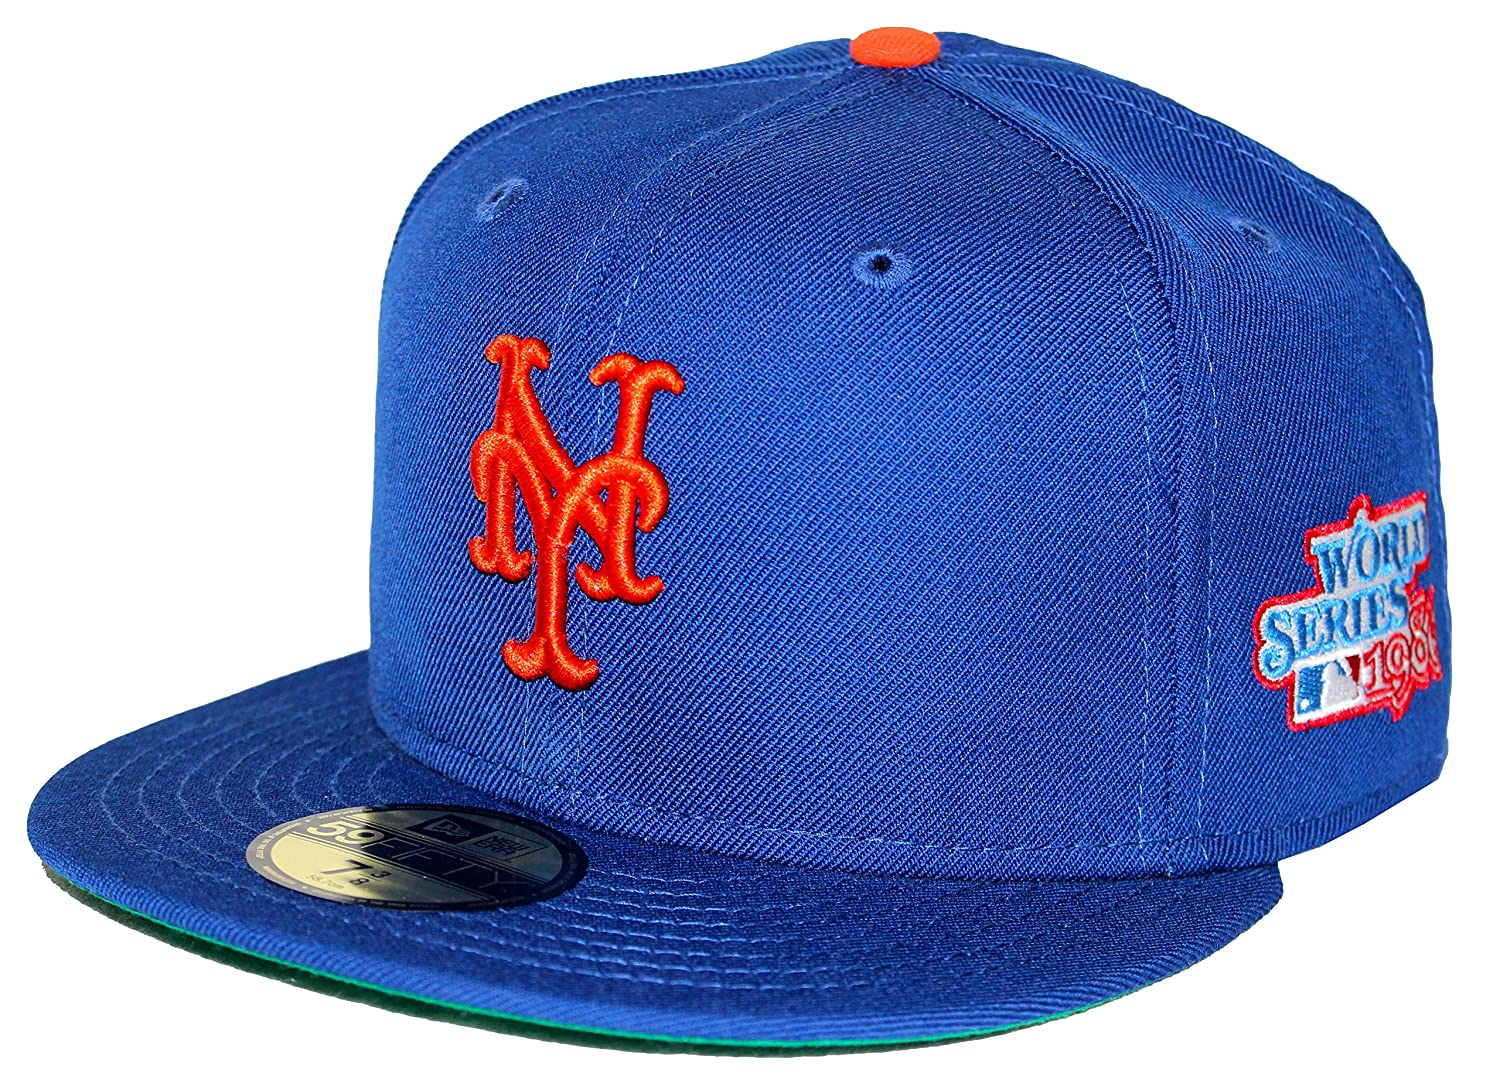 4e8bb7953fb New Era 59Fifty 1986 World Series Patch New York Mets Blue Fitted Cap (7  1 2) at Amazon Men s Clothing store